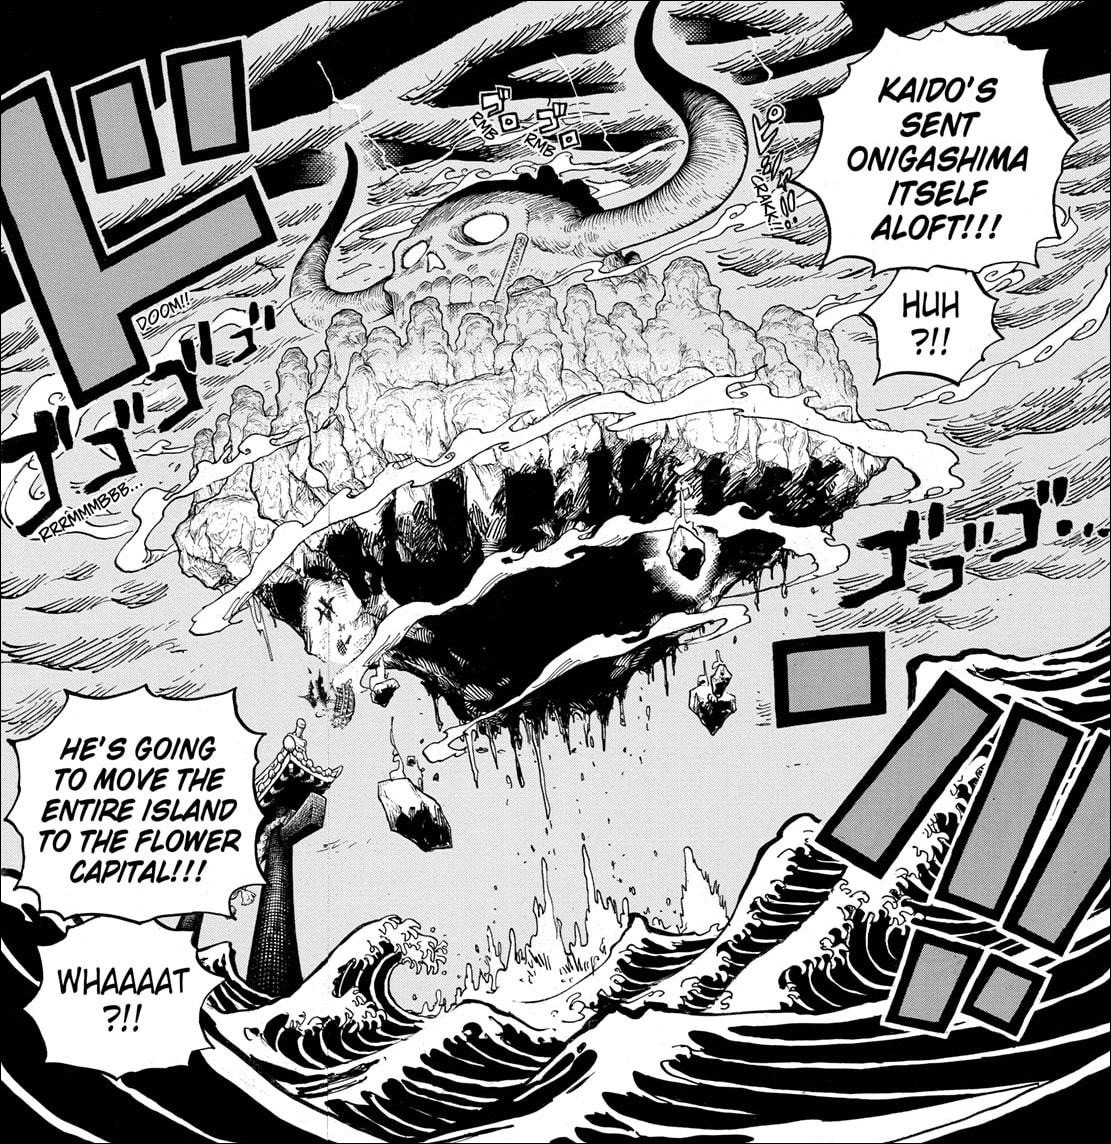 One Piece chapter 997 - Kaido lifts Onigashima Island up into the sky with his flame clouds